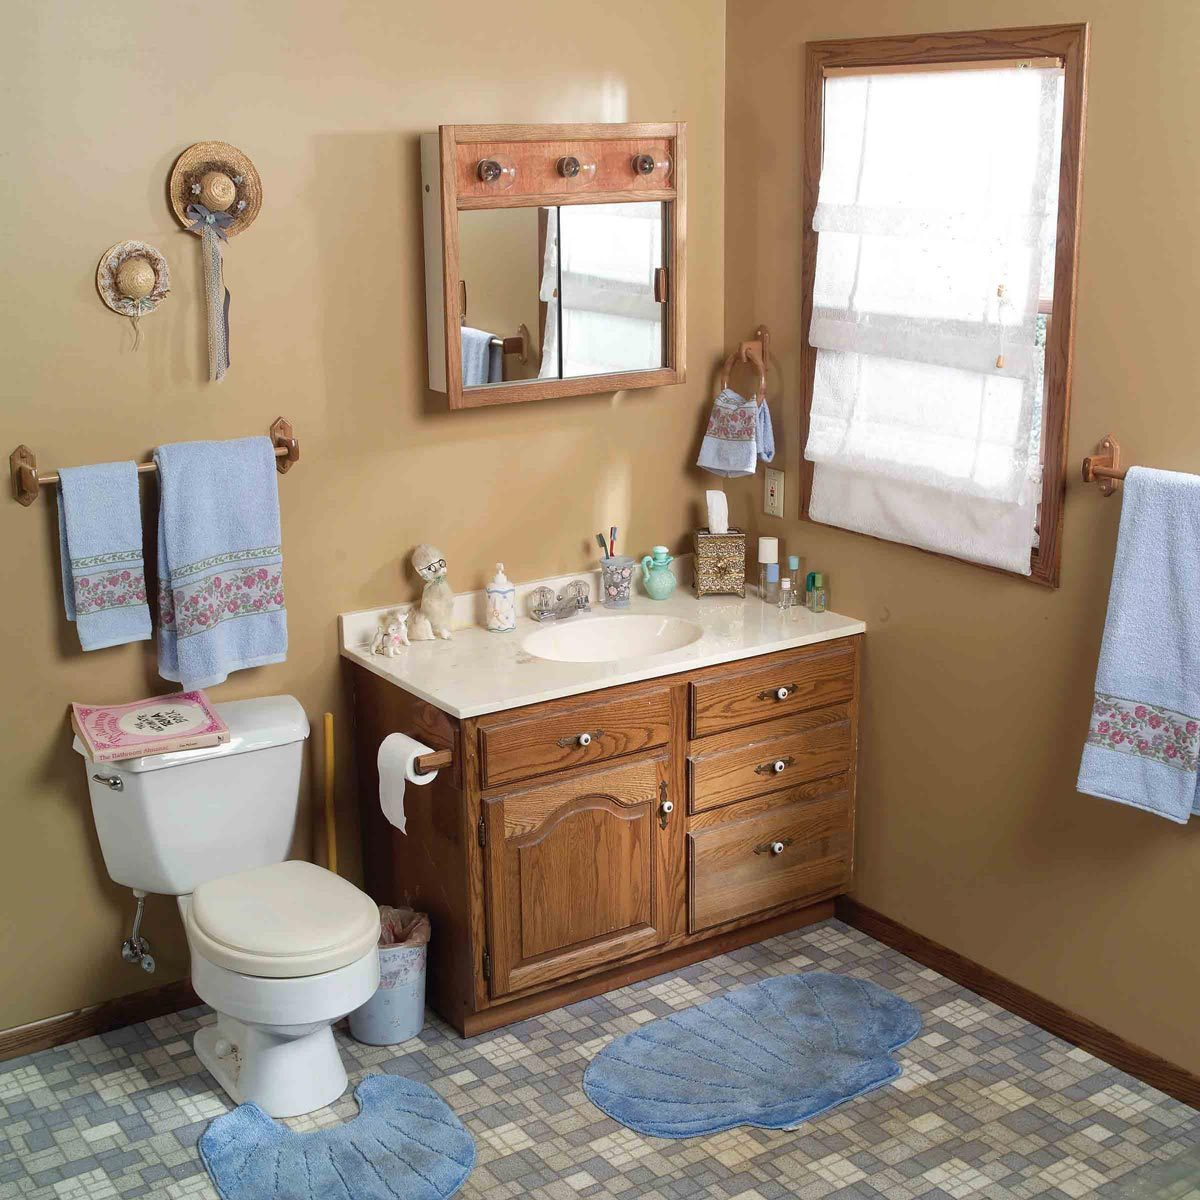 7 Before And After Bathroom Makeovers You Can Do In A Weekend